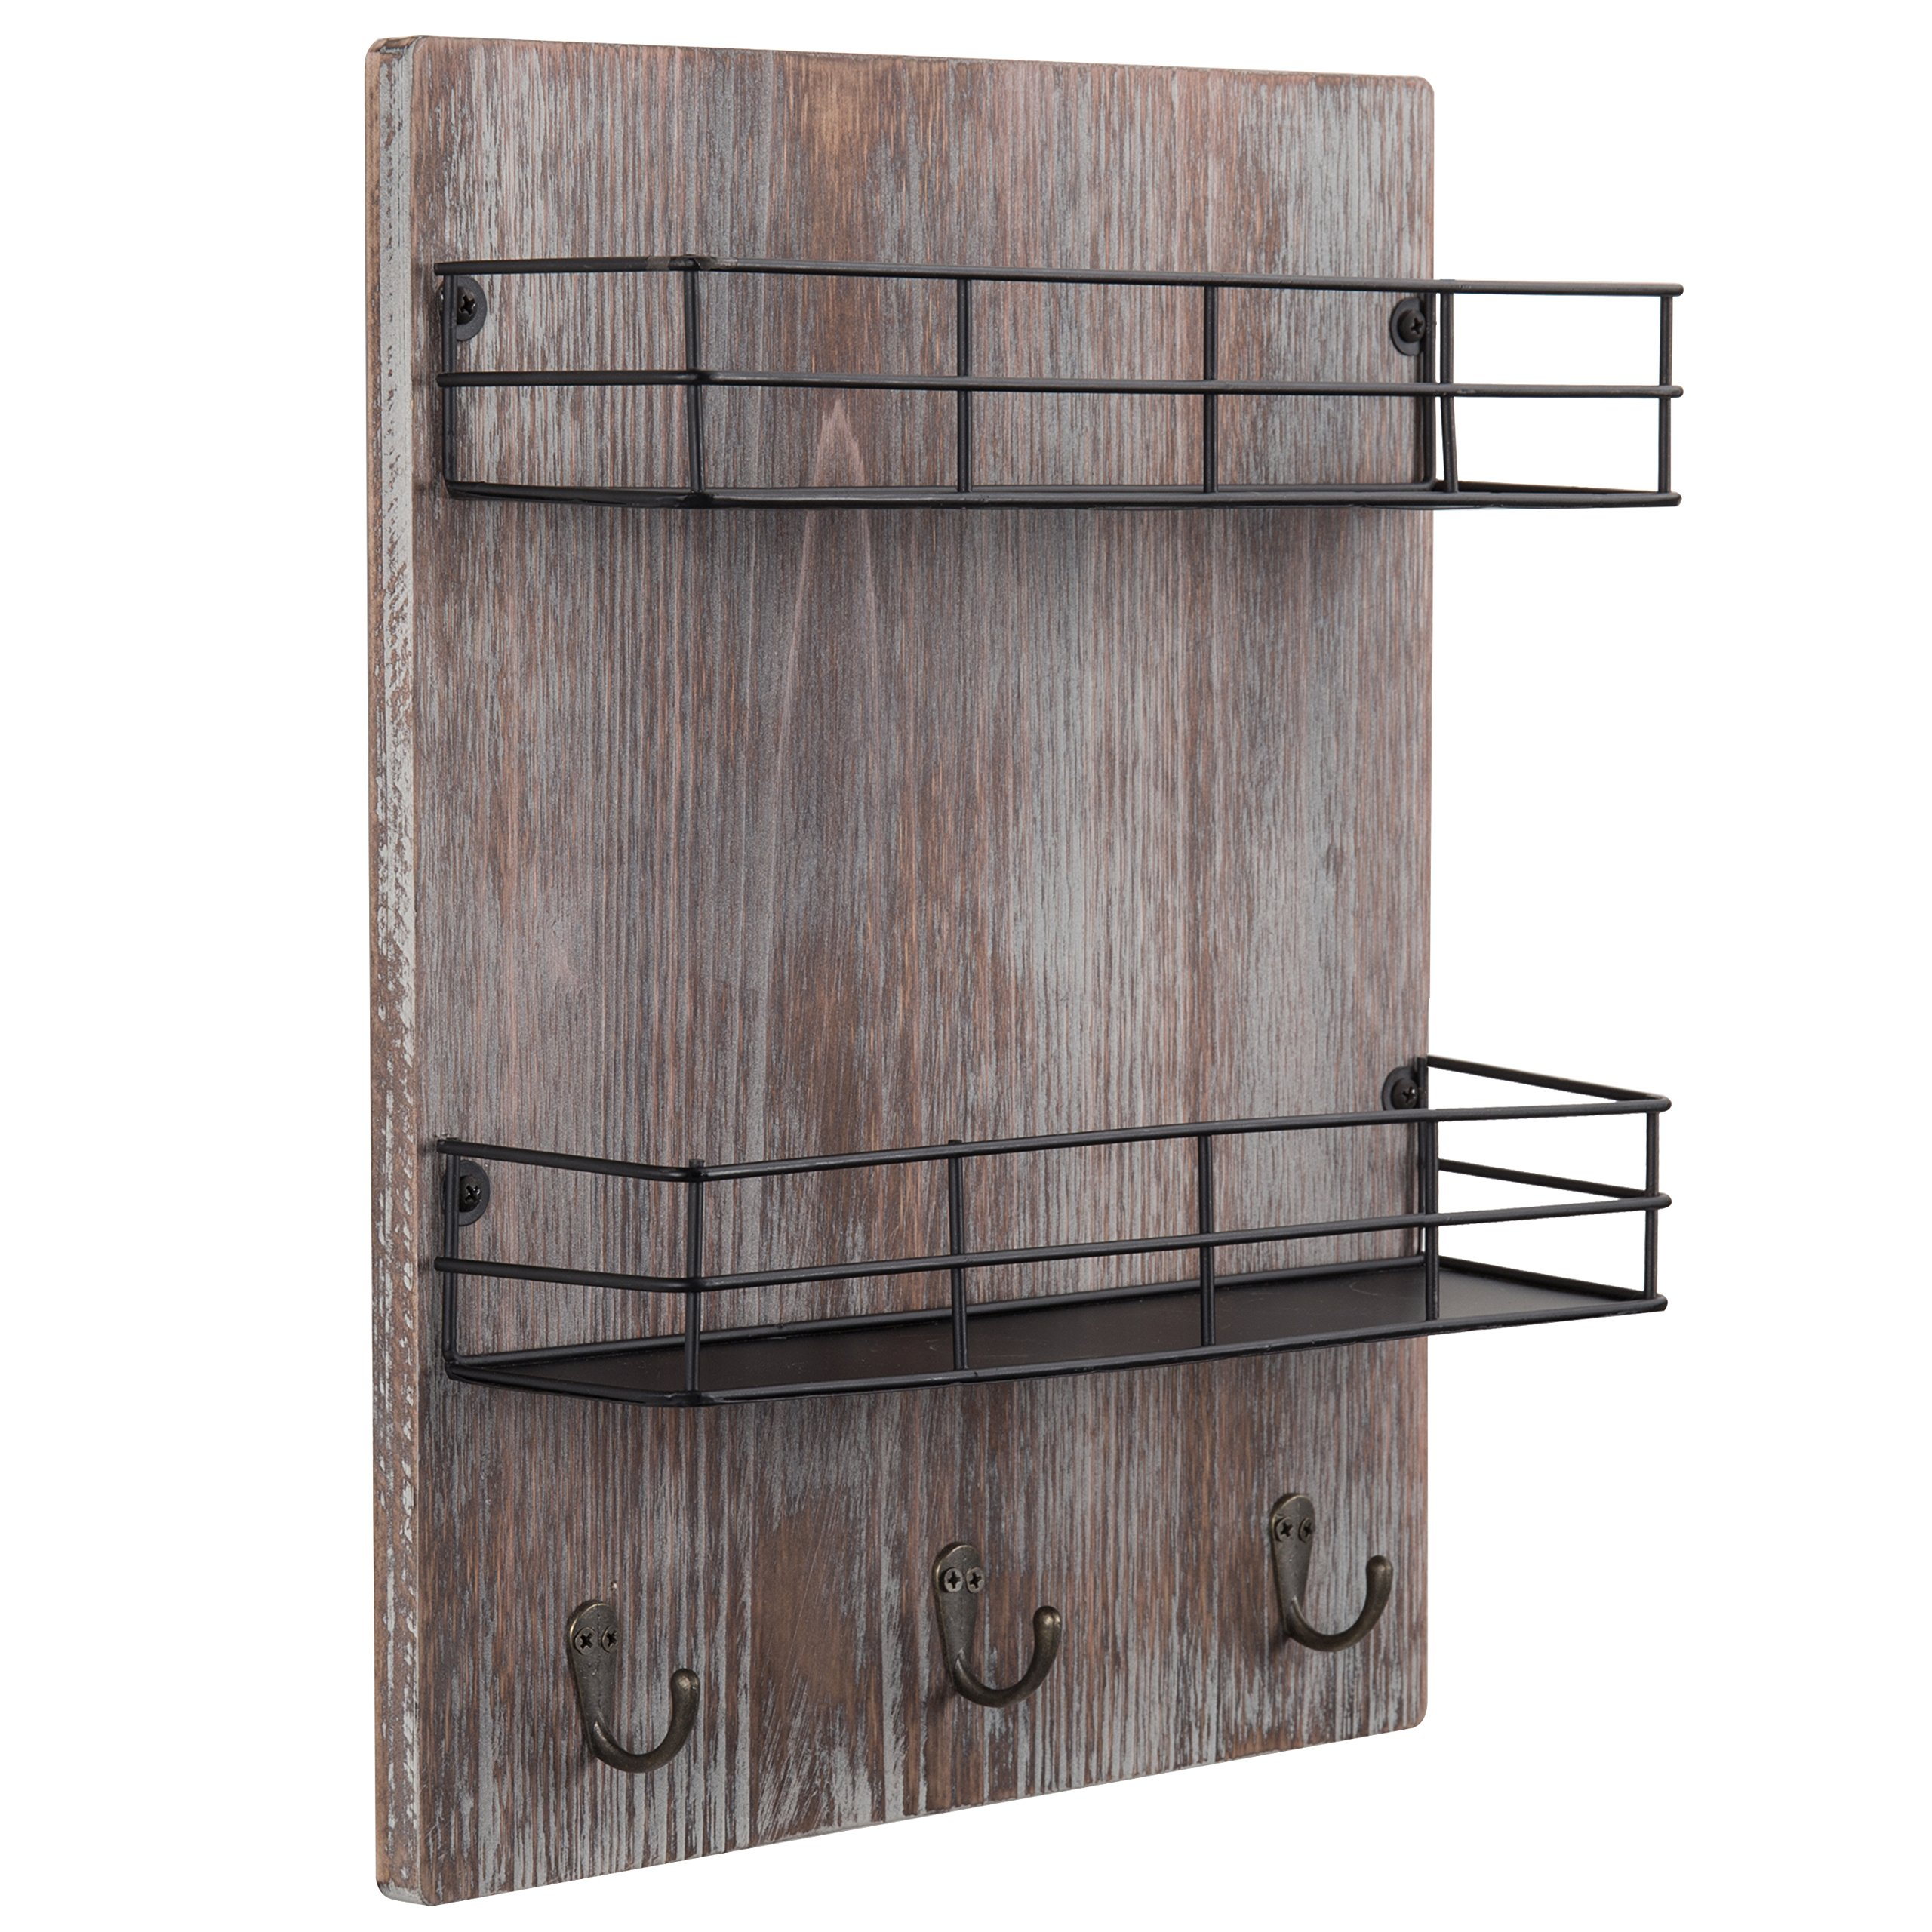 MyGift Wall-Mounted Rustic Torched Wood Spice Rack with 3 Utensil Hooks